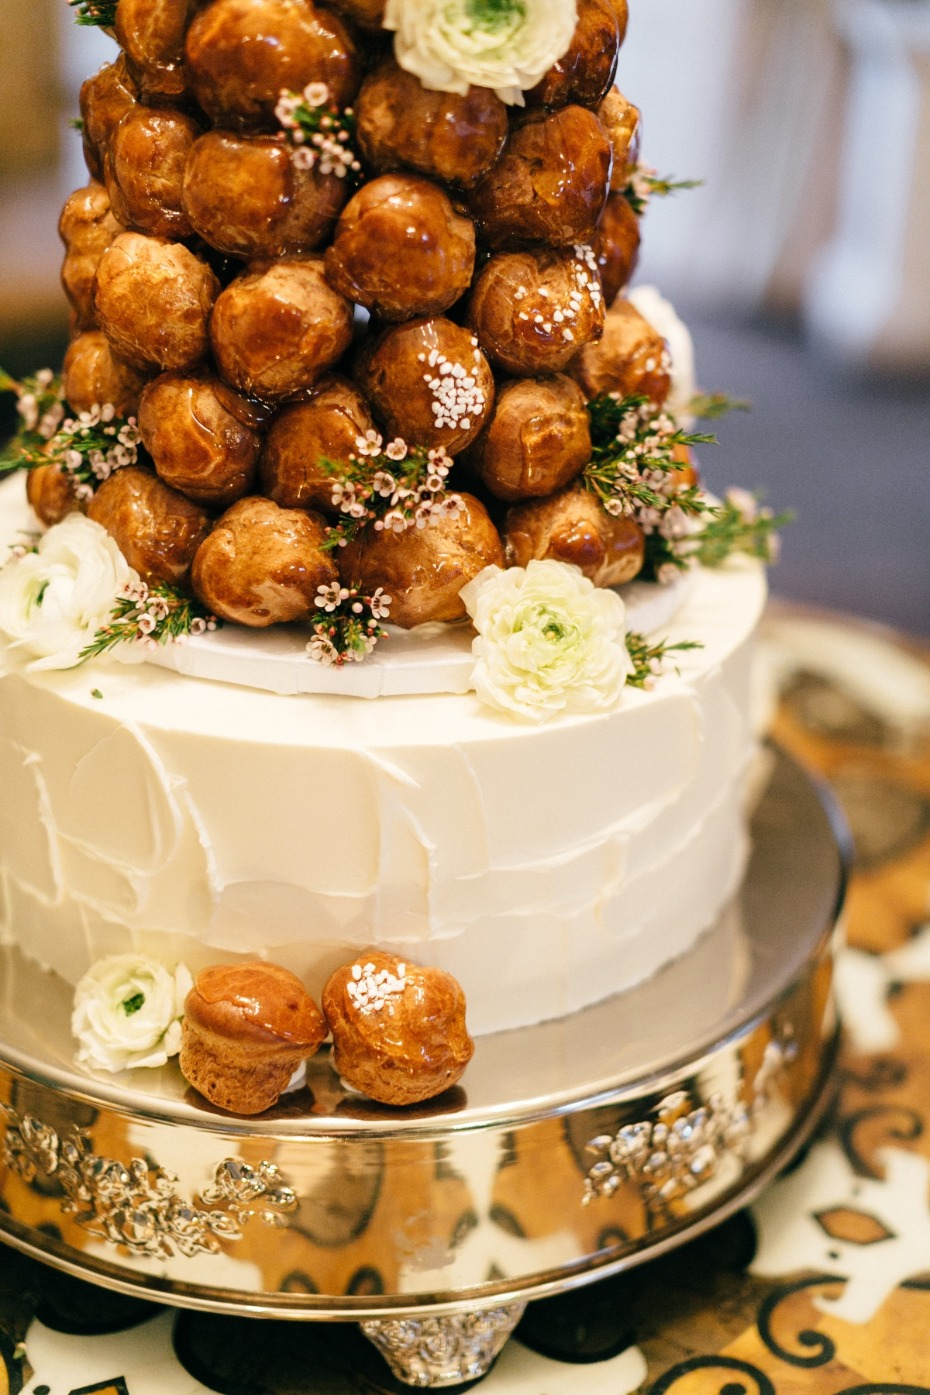 French-inspired croquembouche cake